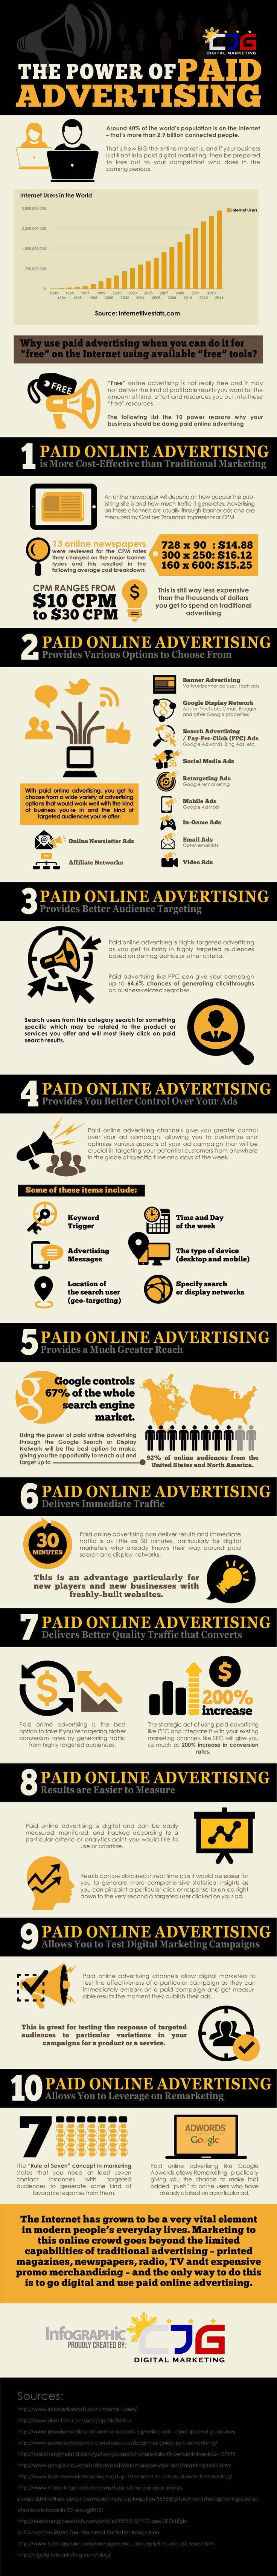 As the number of people connected to the Internet around the world continues to increase so does The Power of Paid Online Advertising (Infographic)